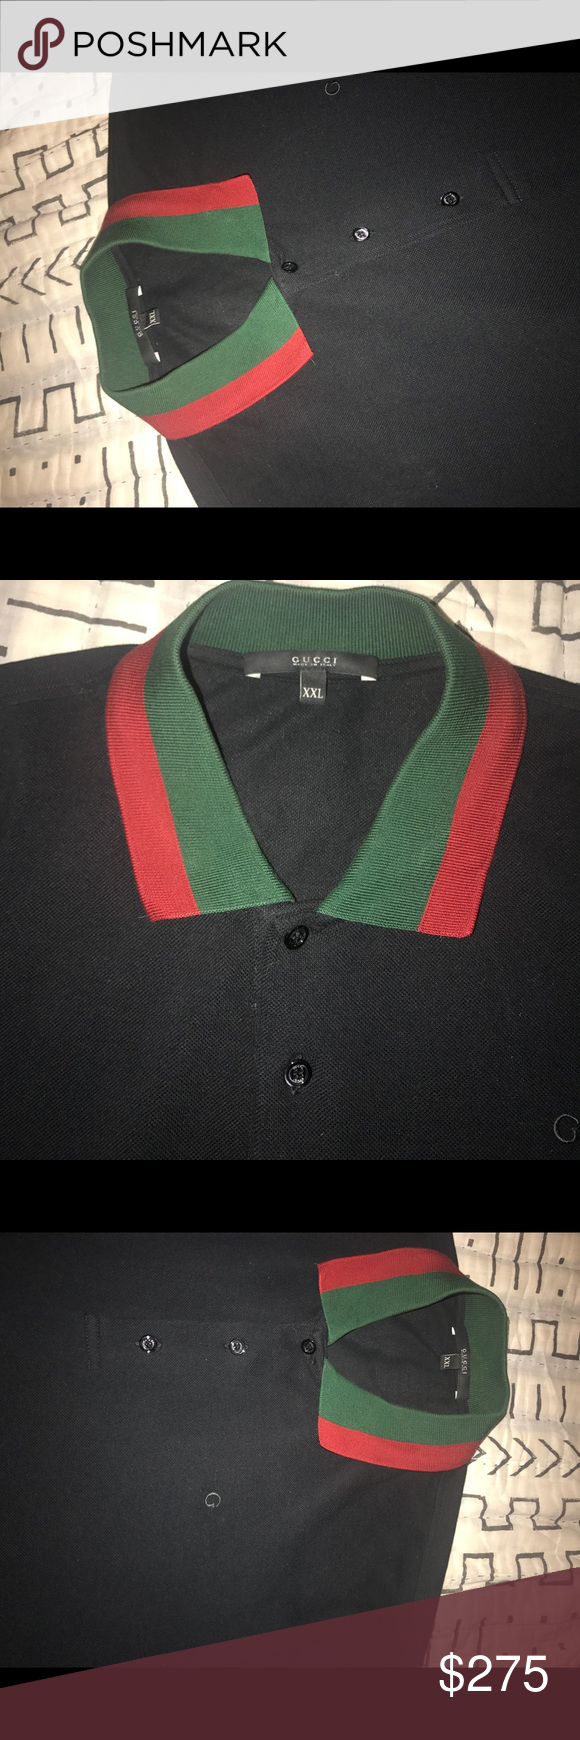 207a2416 Gucci Polo red/green collar Black Gucci polo. Small Embroidered G on upper  right area, classic red/green collar. Size EU XXL (Us L) Gucci Shirts Polos